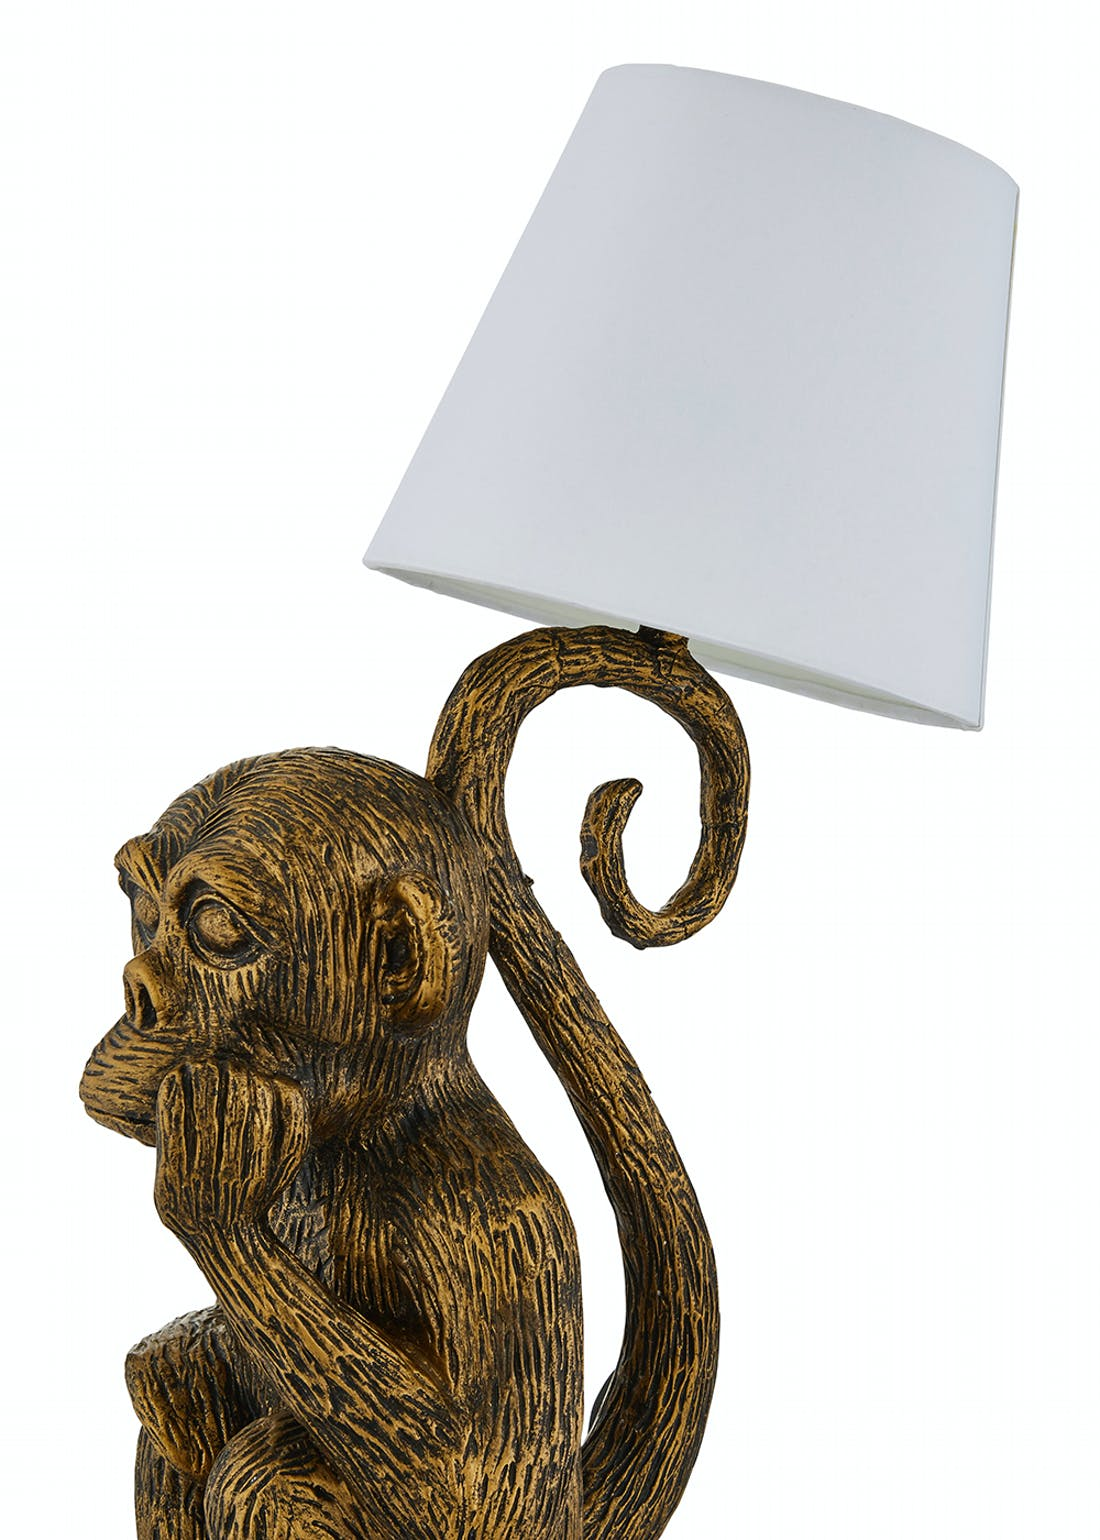 Monkey Table Lamp (H43cm x W33cm x D19cm)